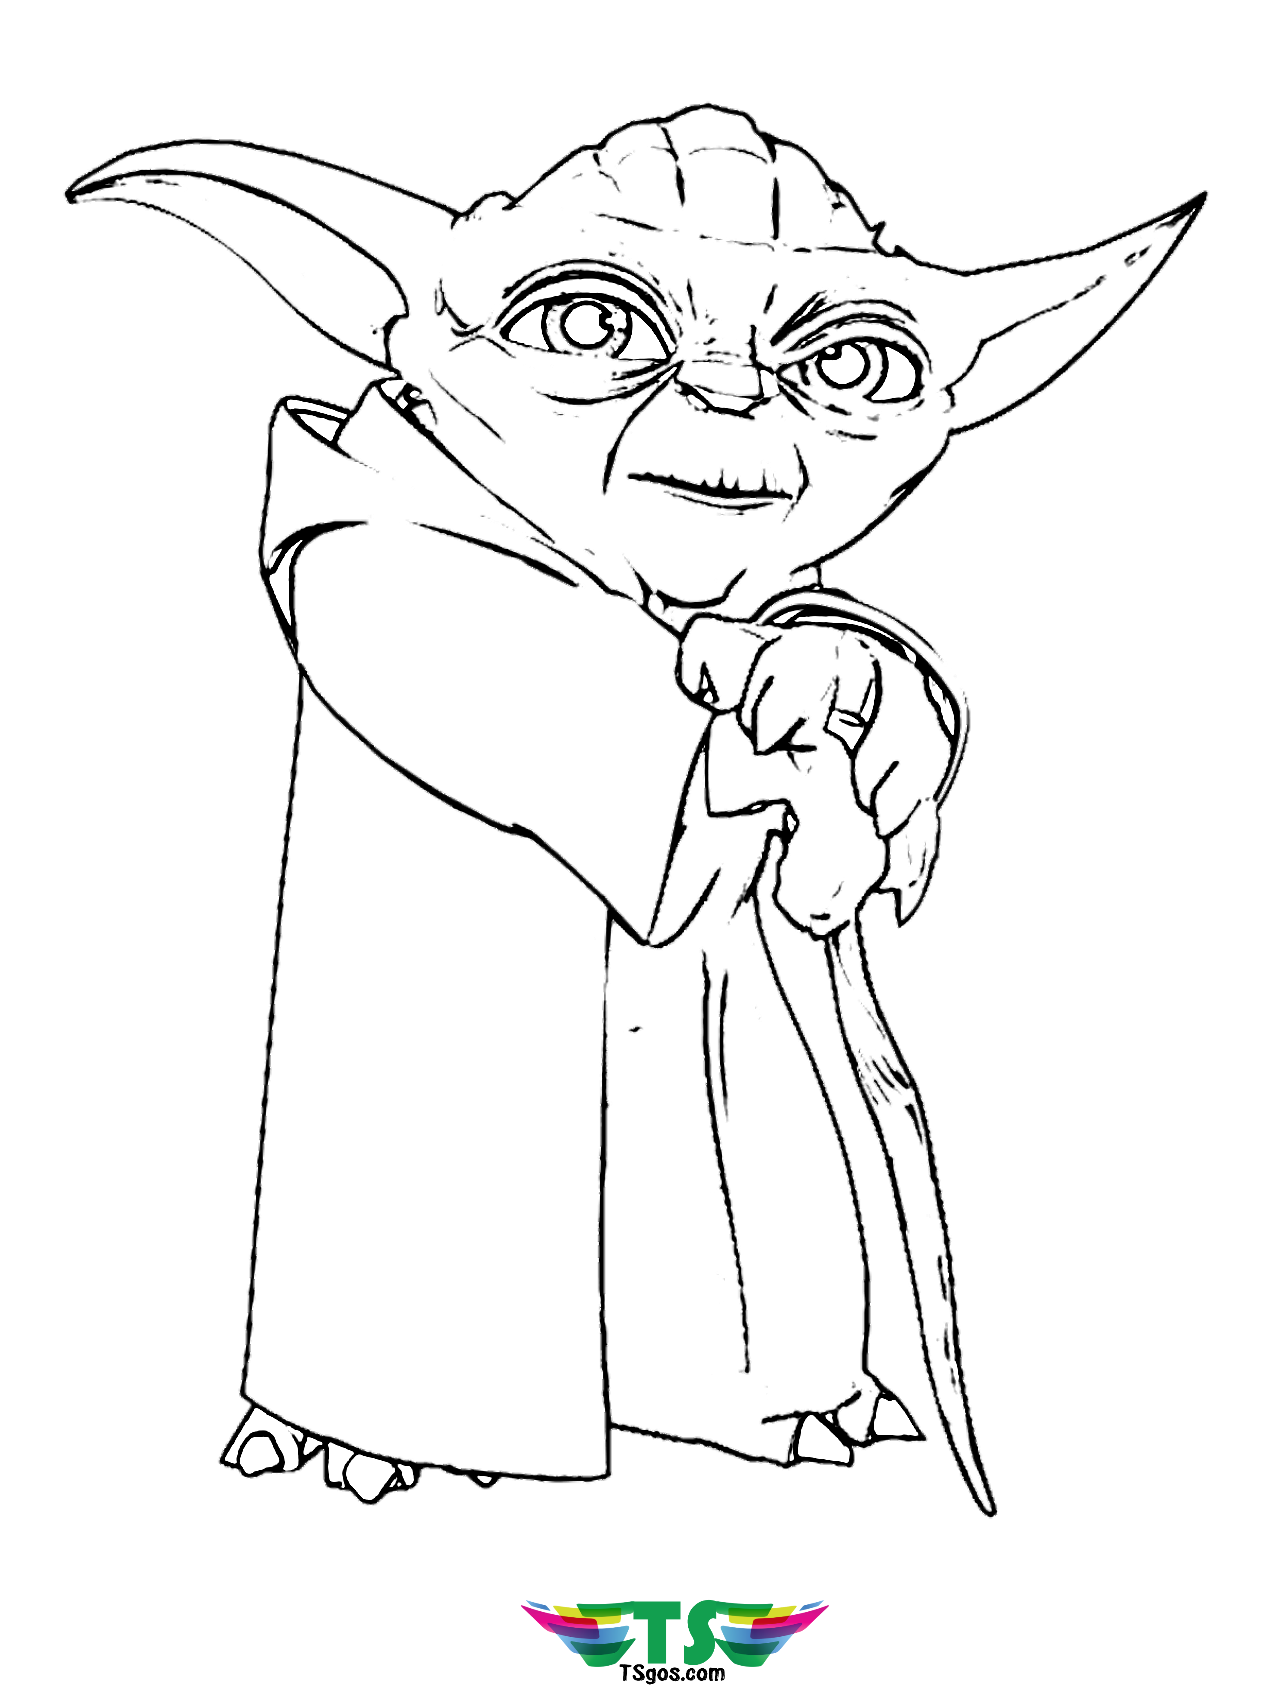 Image for Star Wars Master Yoda coloring pages.